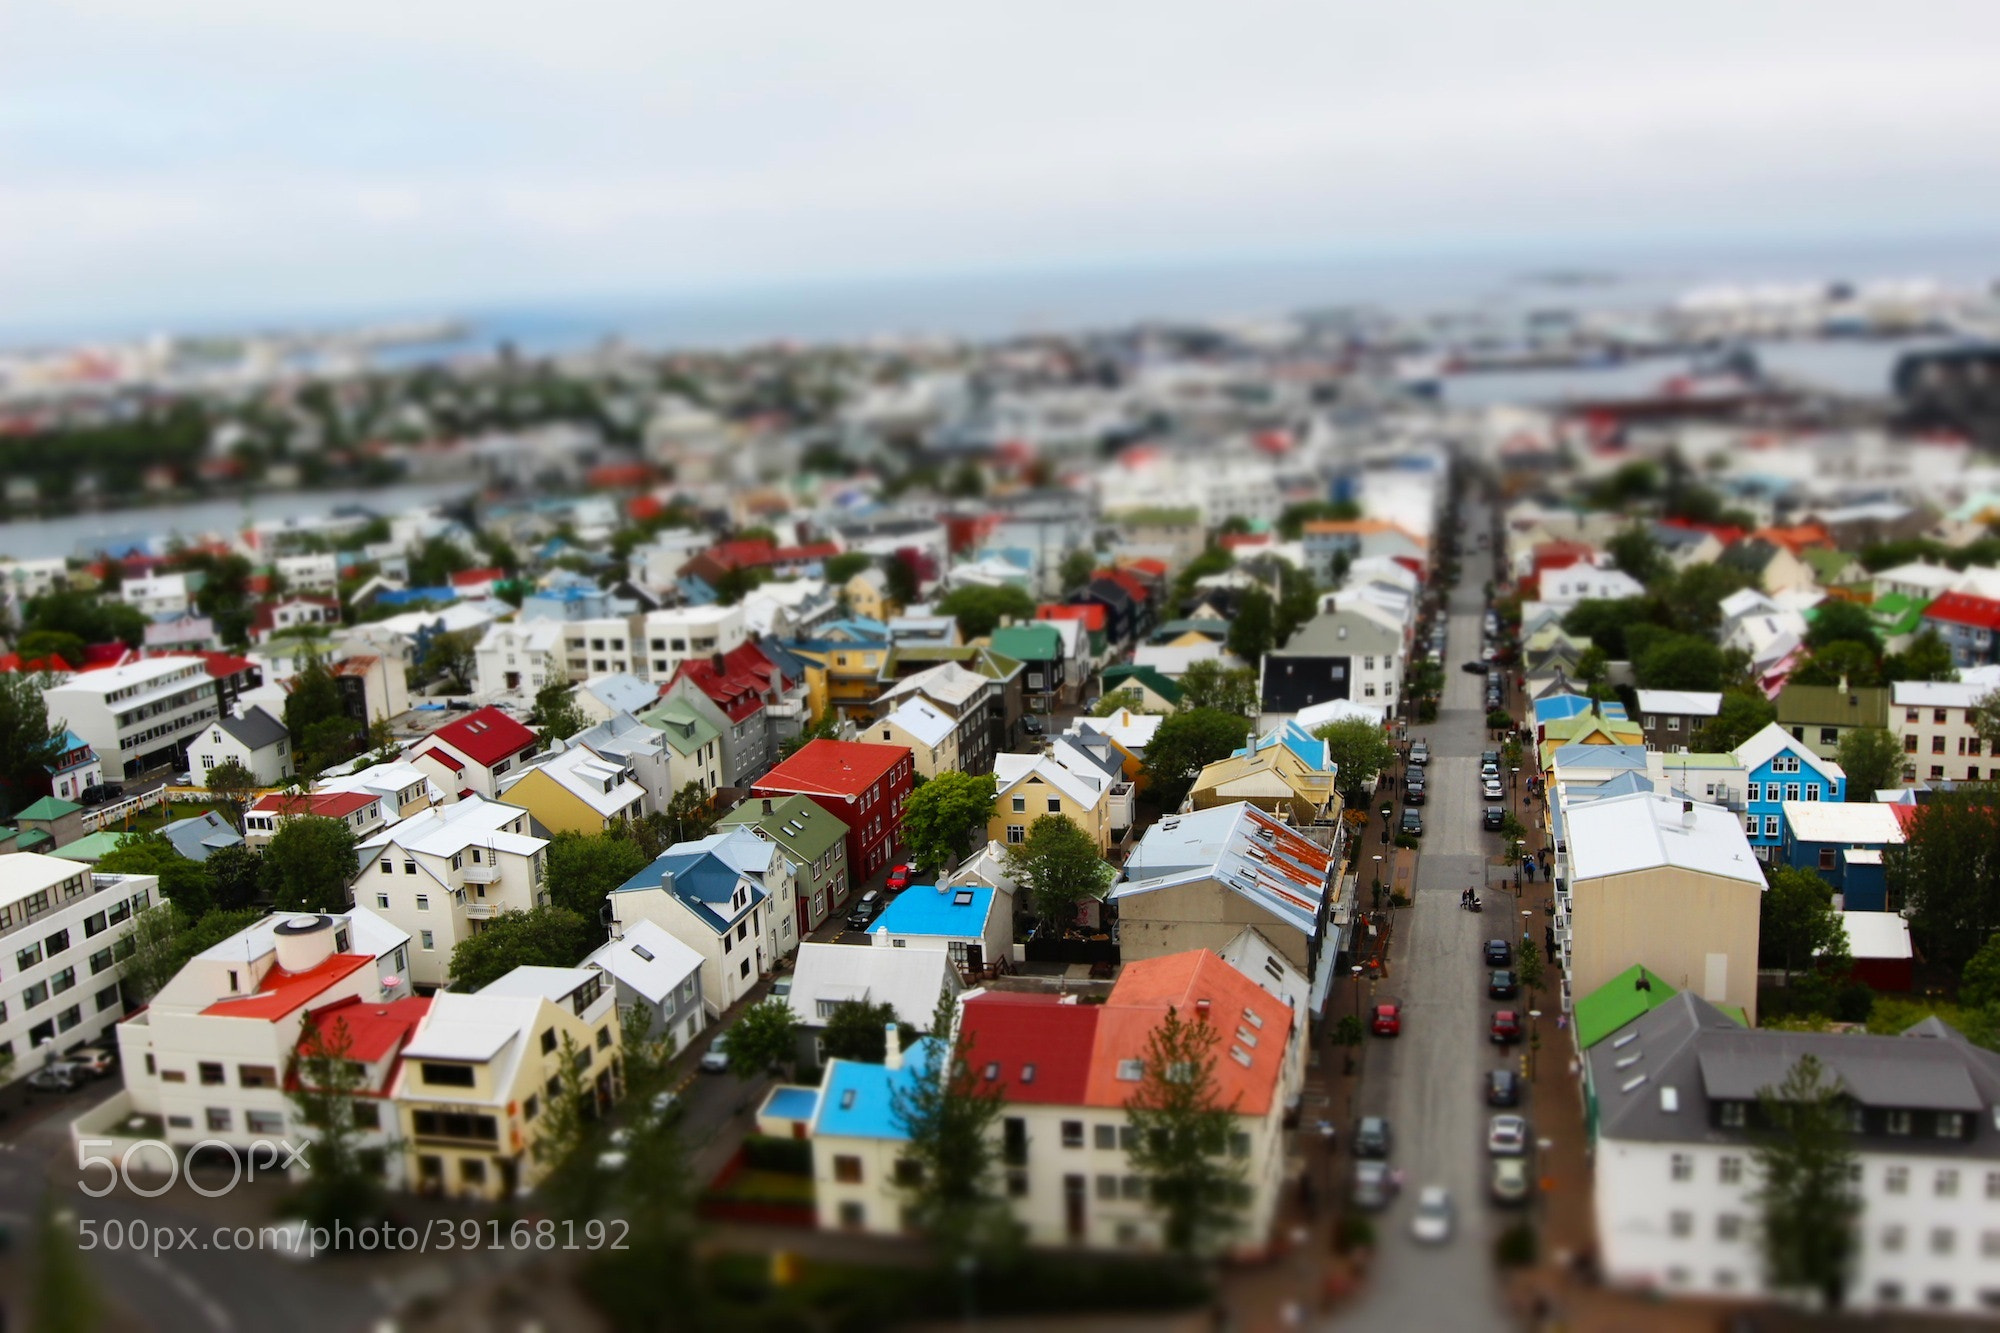 Photograph Miniature Effect by Evan Williams on 500px